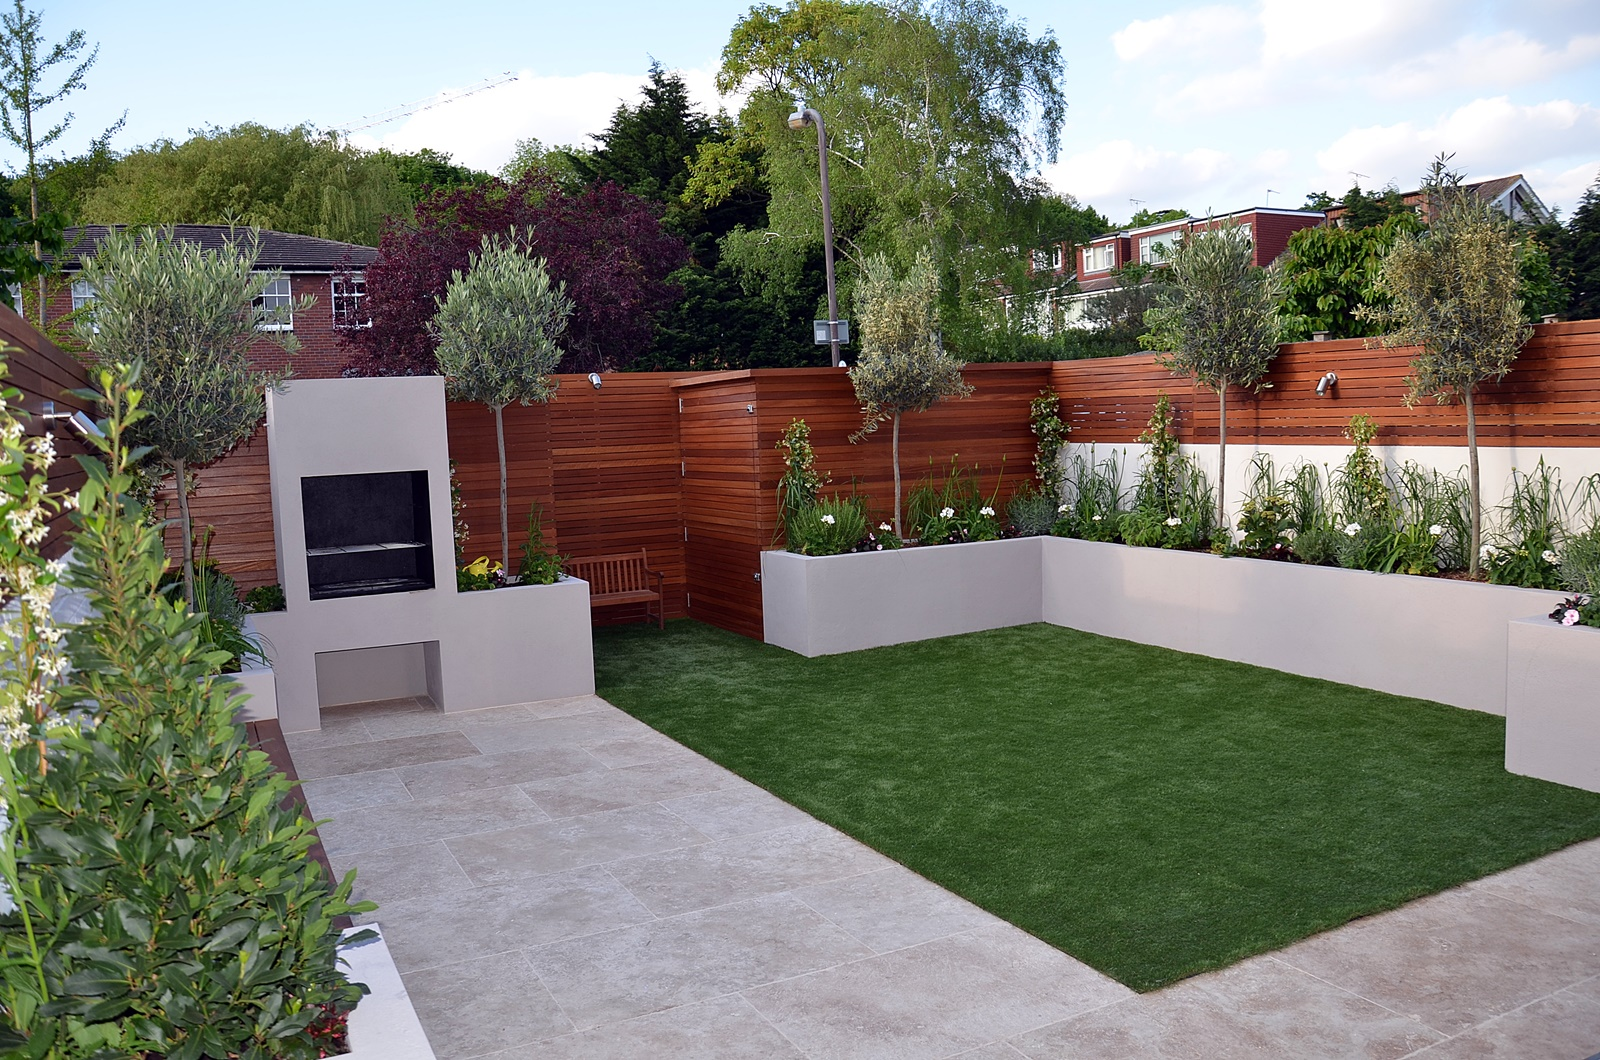 Modern garden design fulham chelsea clapham battersea for Design of the garden